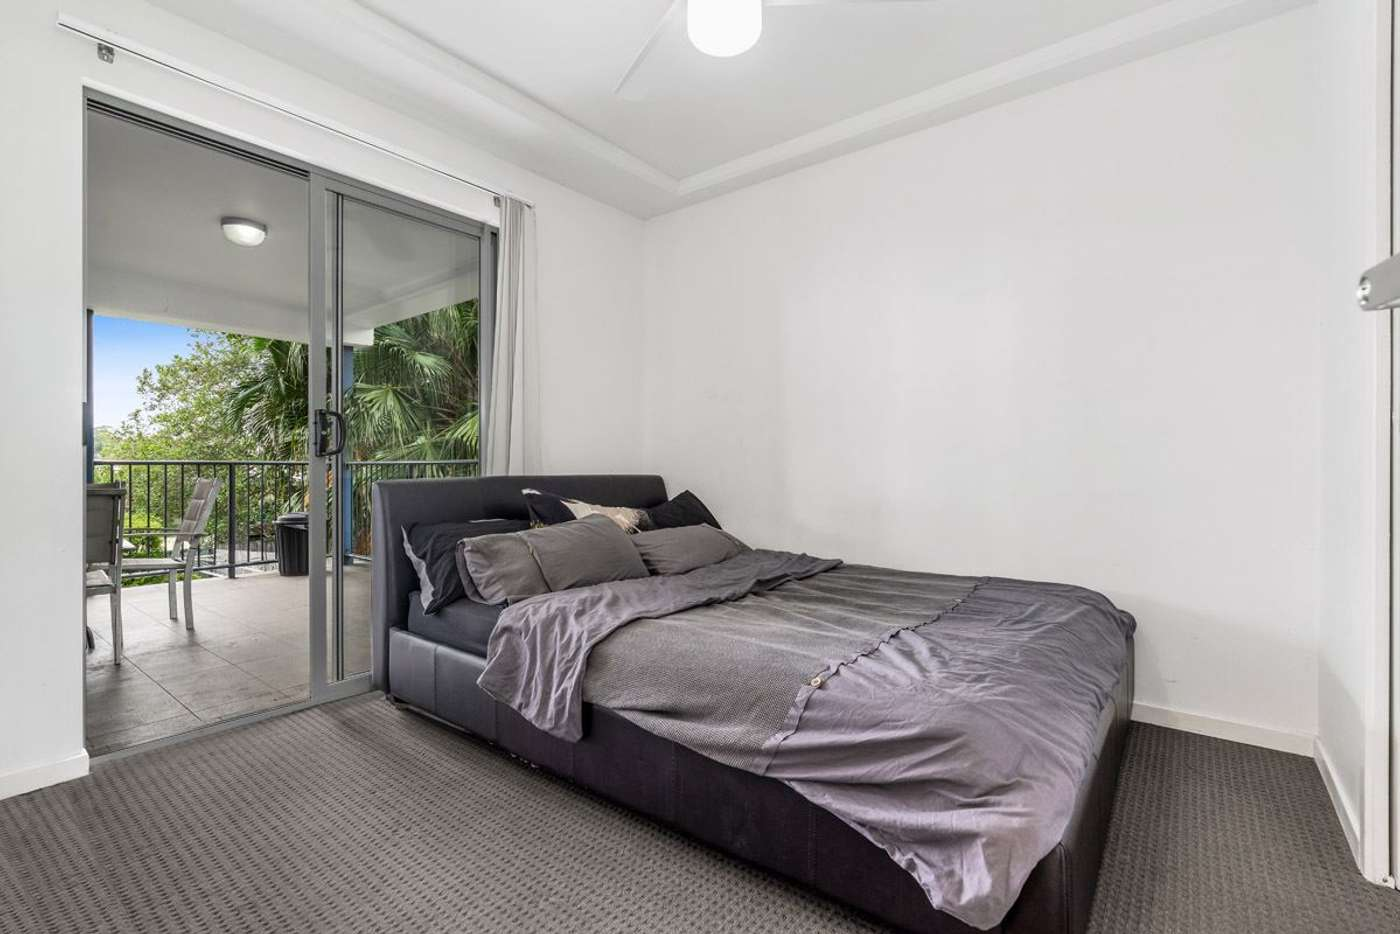 Fifth view of Homely apartment listing, 2/82 Grenfell Street, Mount Gravatt QLD 4122